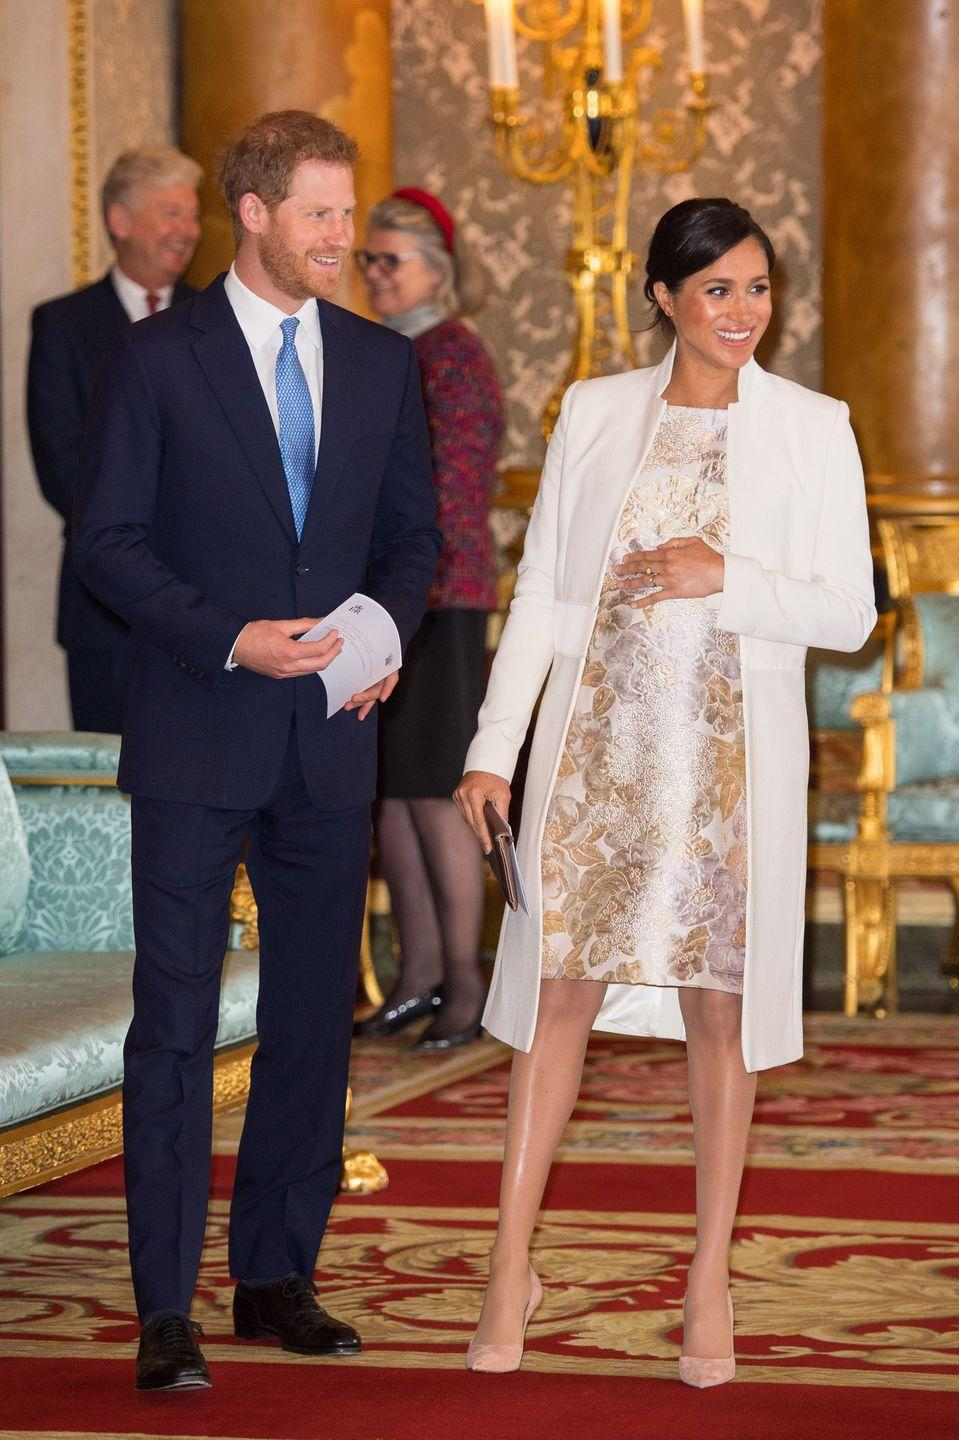 <p>Harry shares a laugh with Meghan as they attend a reception to mark the 50th anniversary of the investiture of the Prince of Wales at Buckingham Palace.</p>